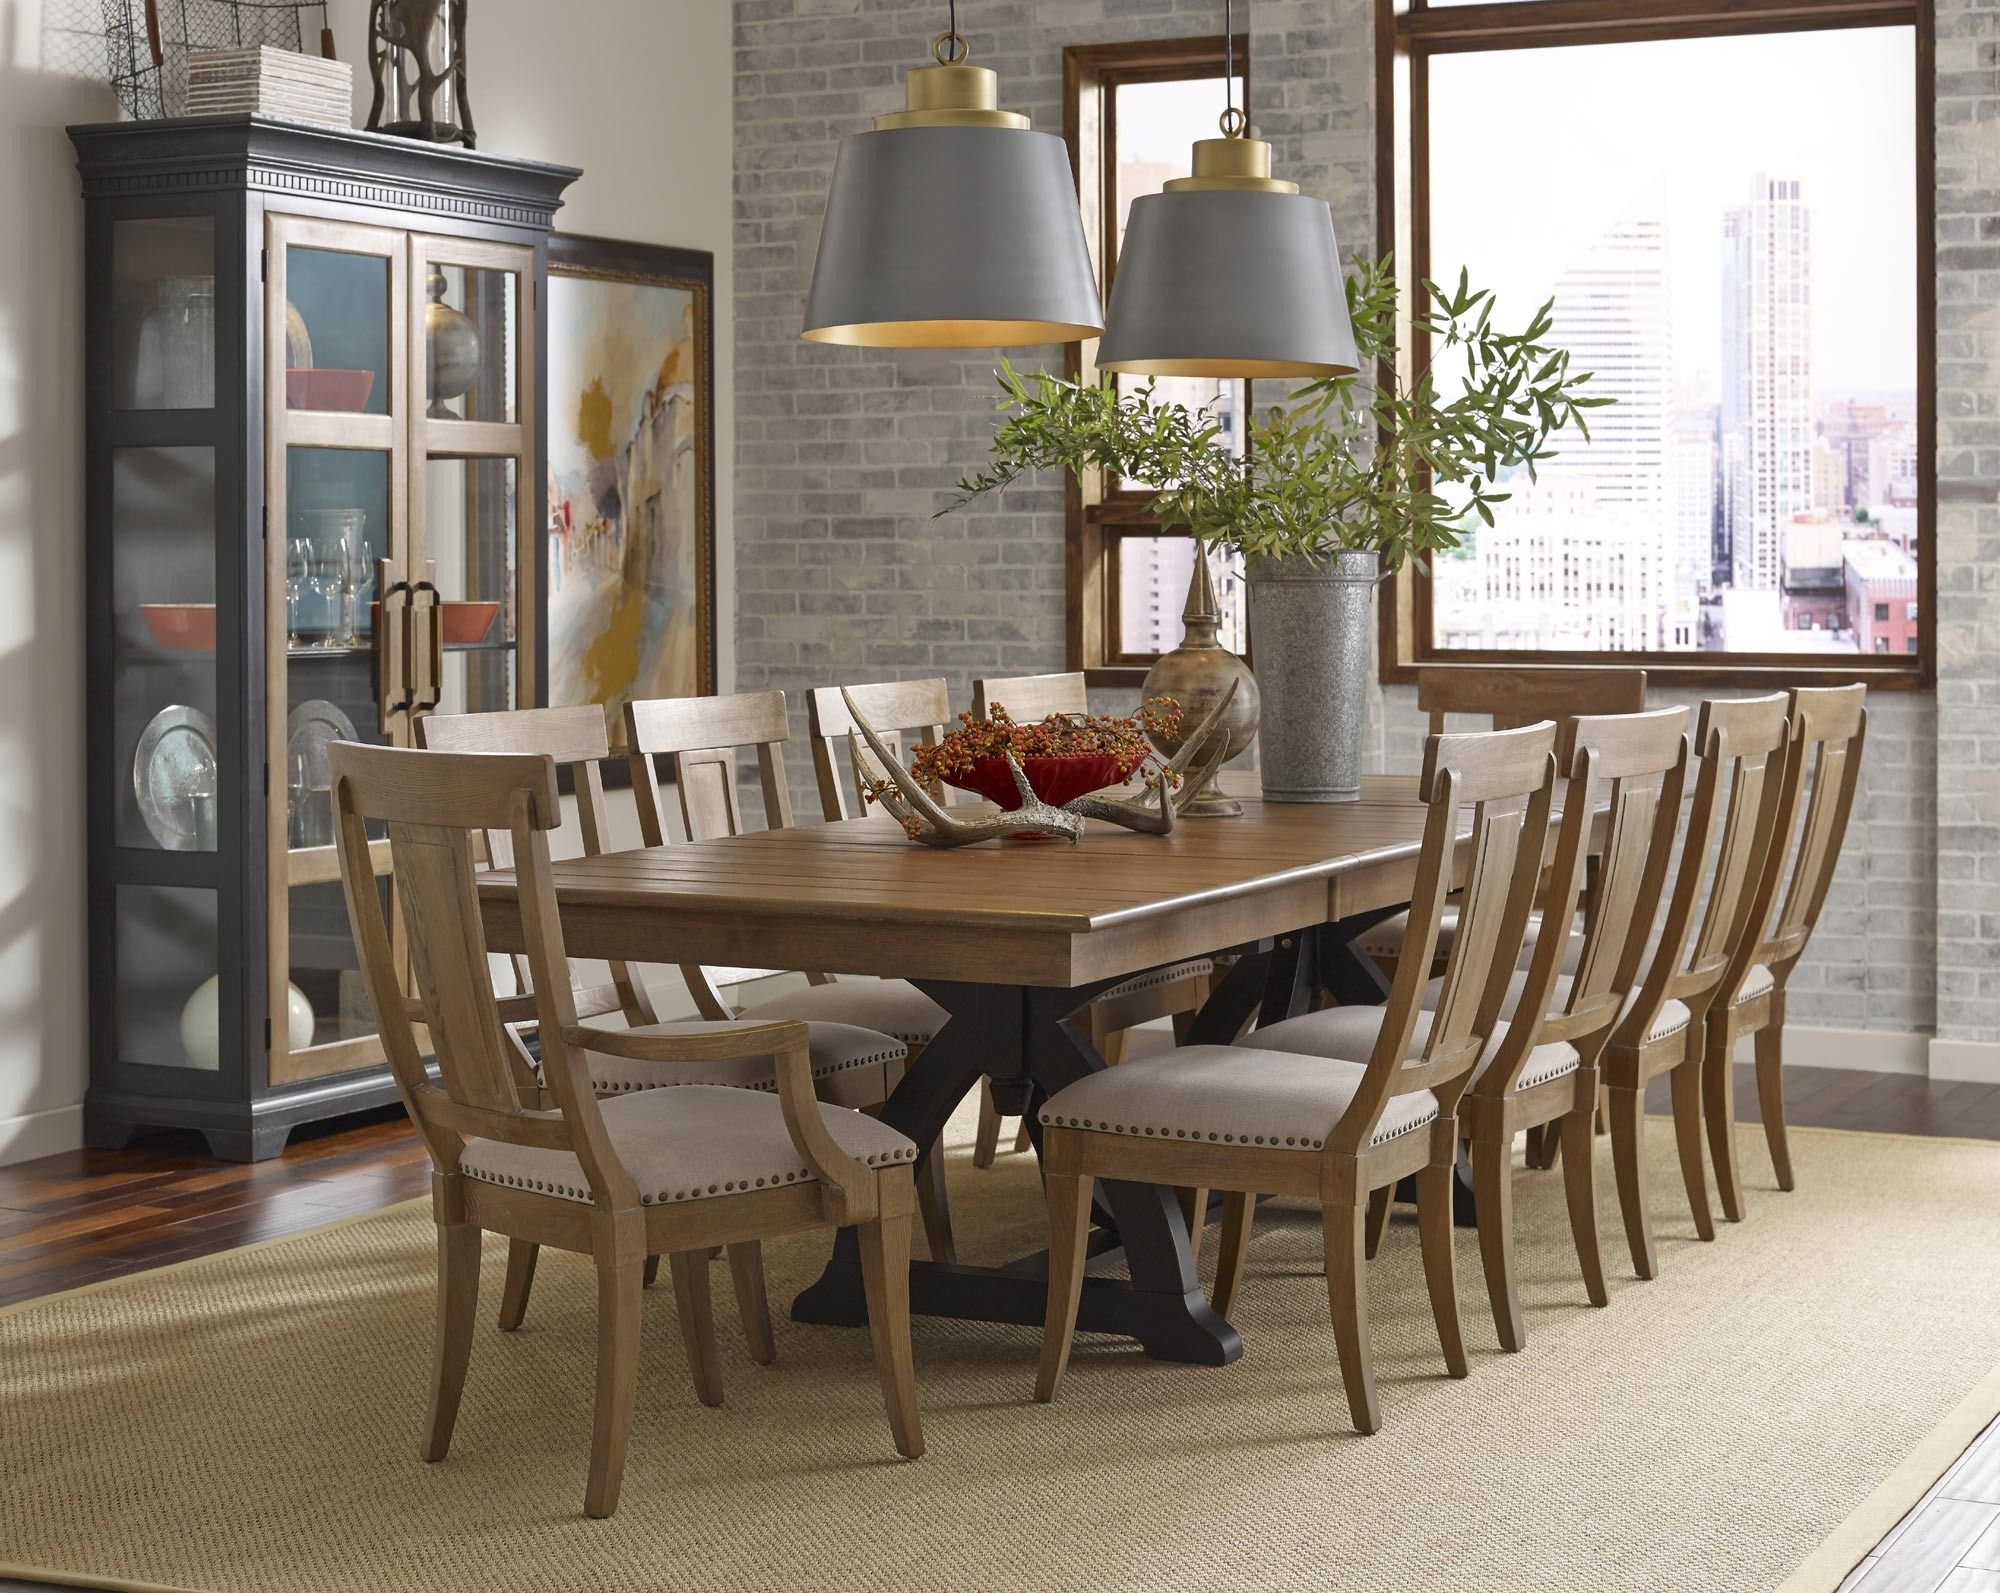 Stone Ridge Trestle Dining Room Set Kincaid Furniture Home Gallery Stores Dining Room Sets Furniture Dining Table Kincaid Furniture